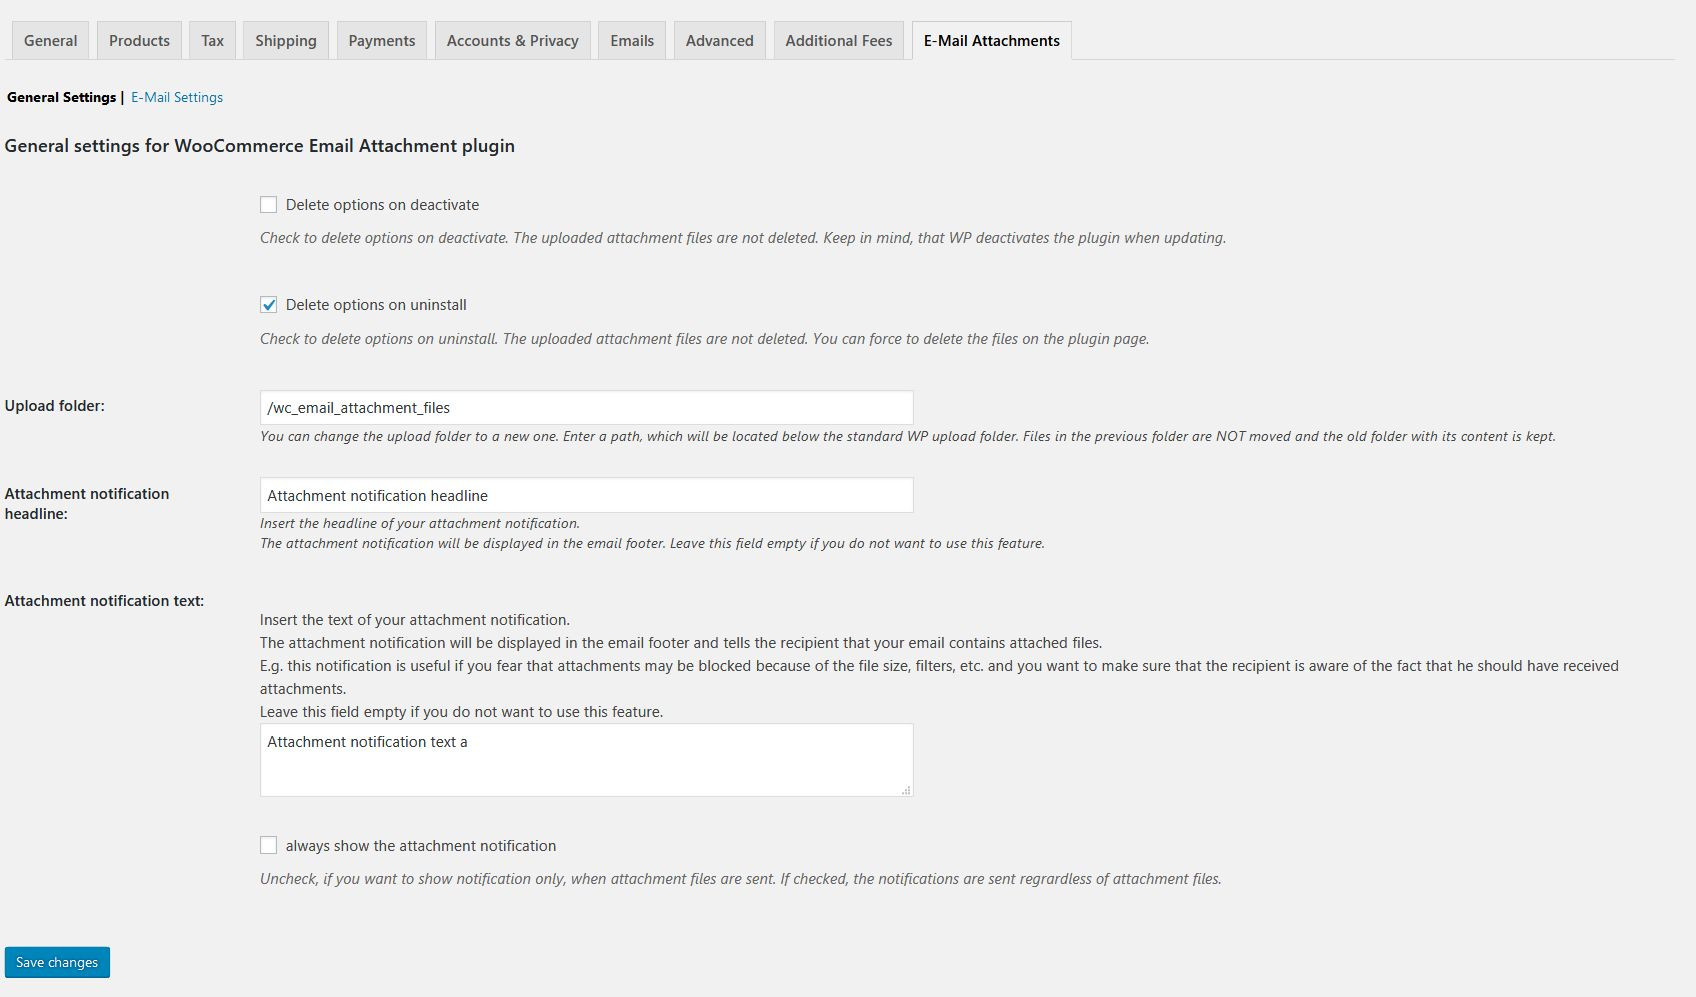 Screenshot of the e-mail attachments admin/settings page (general settings)